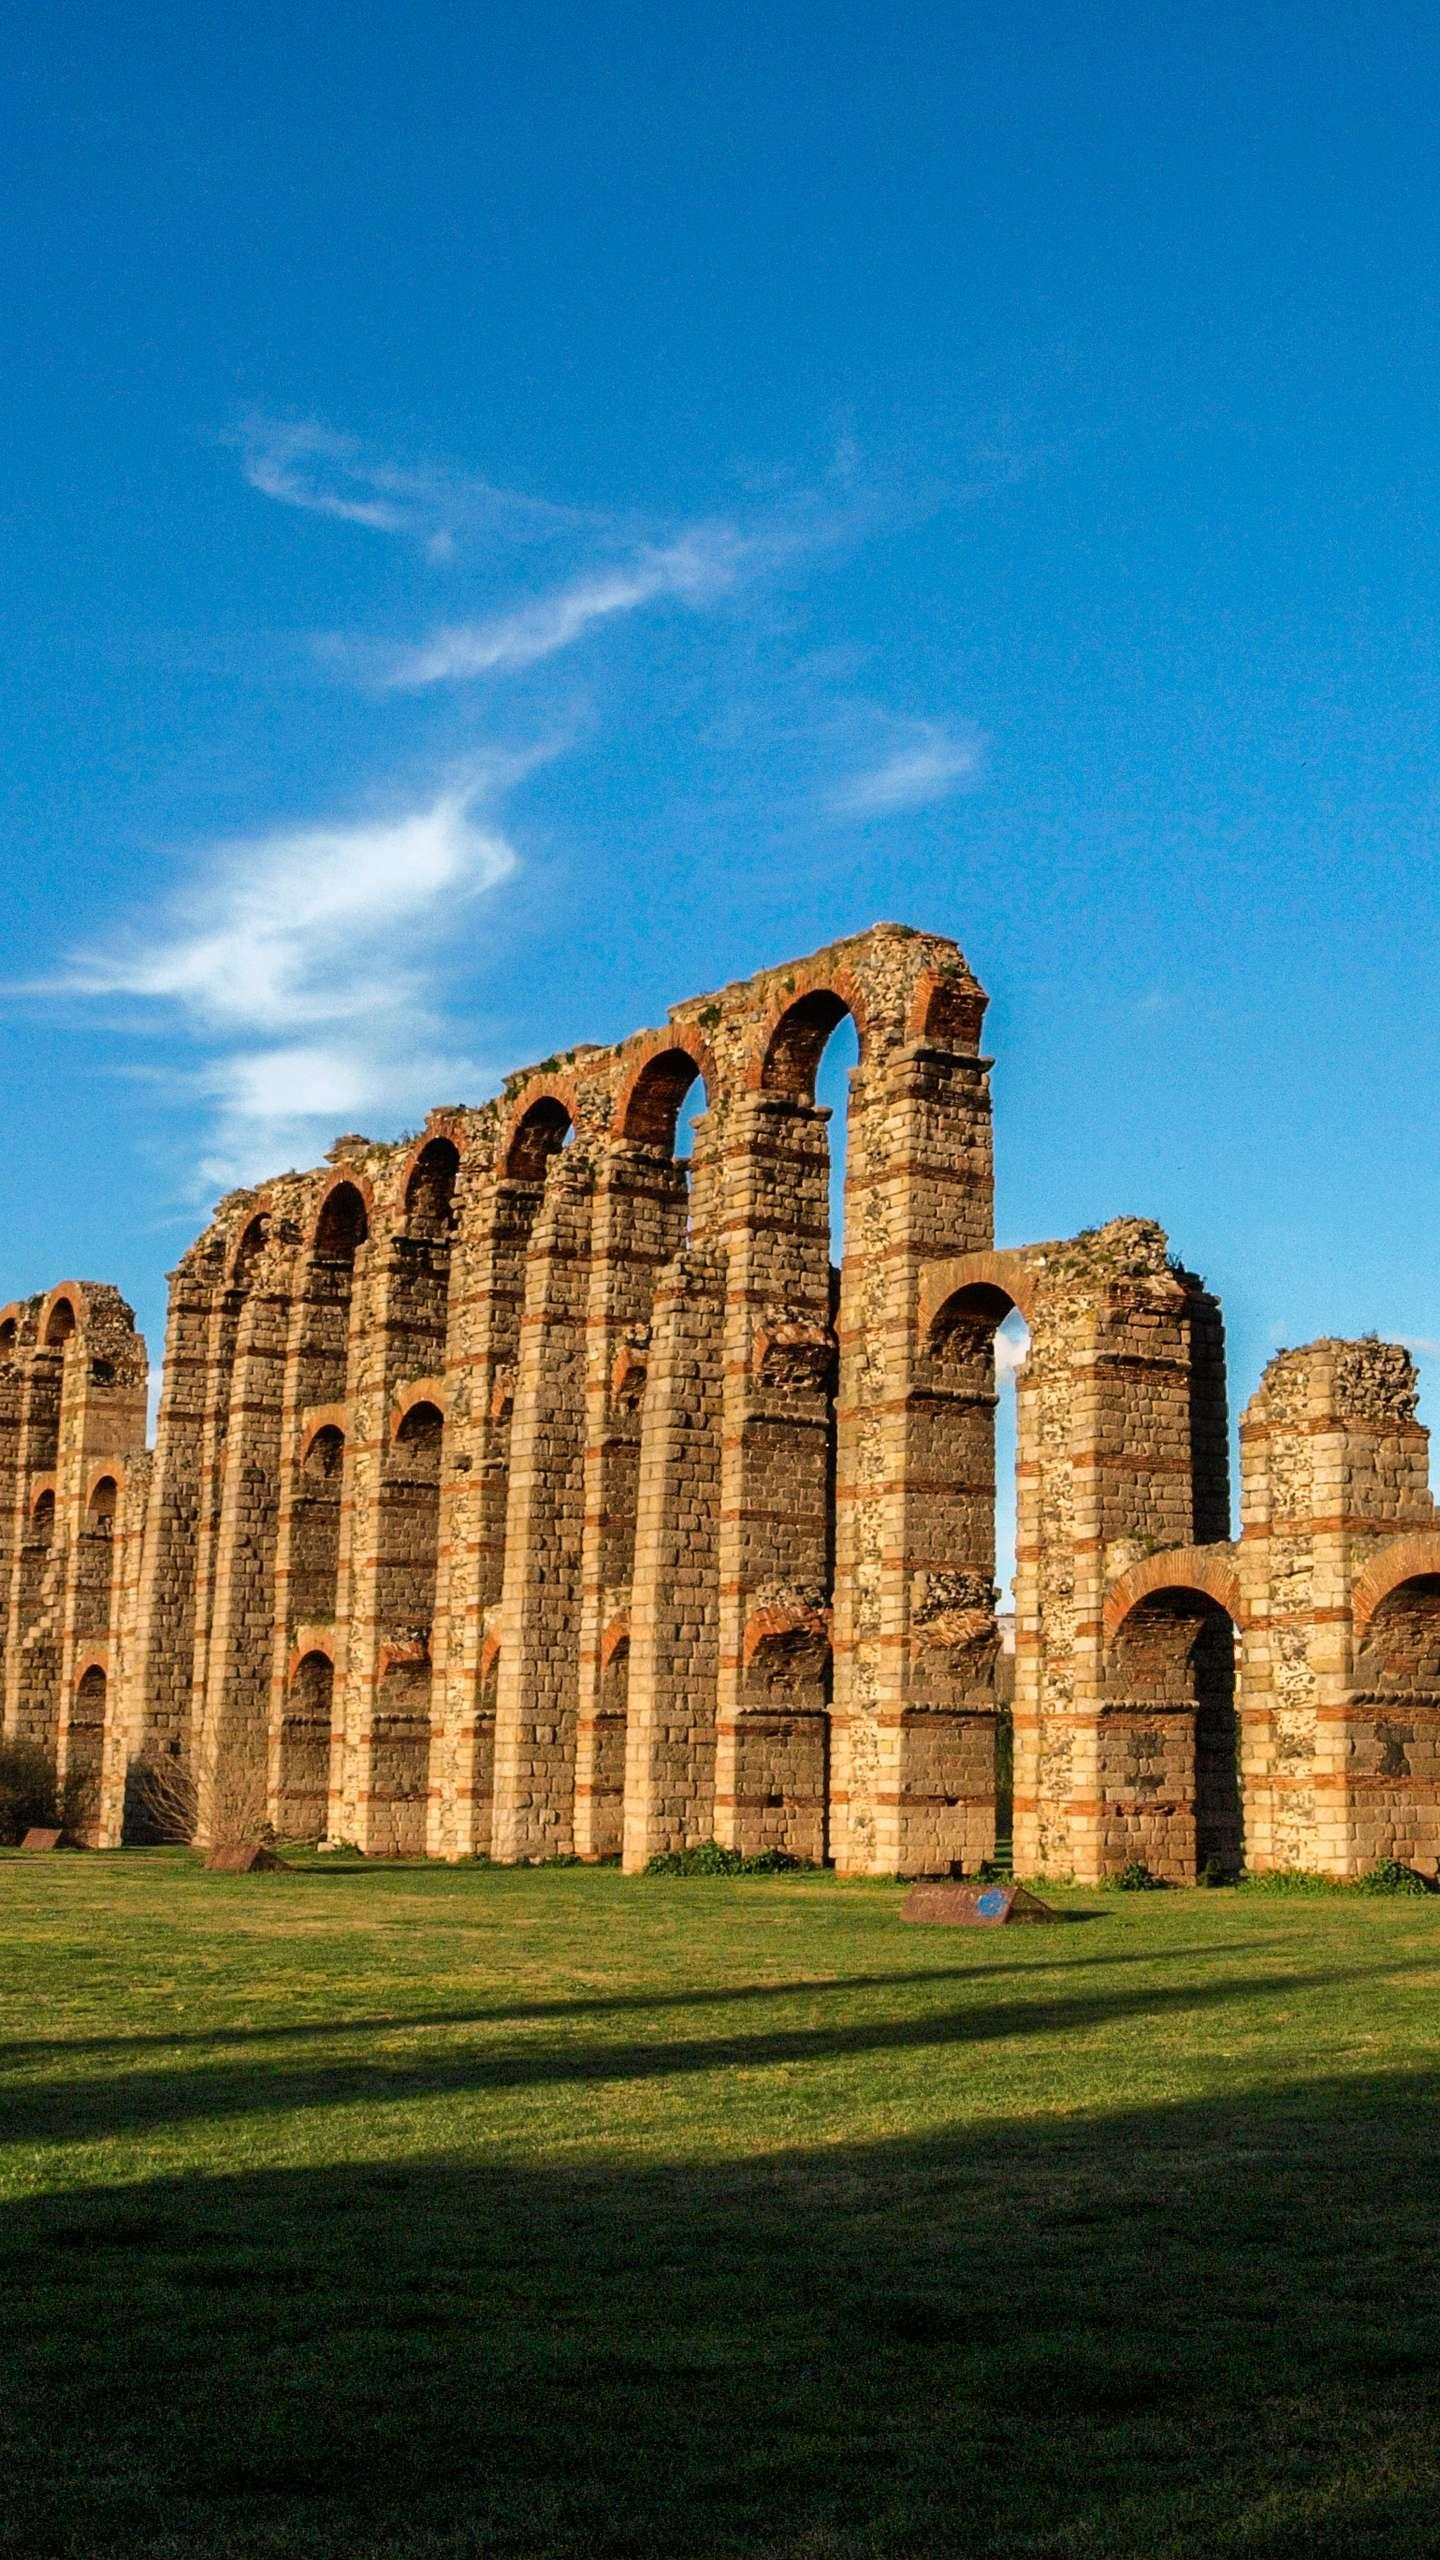 Spain - Merida. One of the most beautiful ancient Romanesque cities in Spain, built by the Romans at the time.